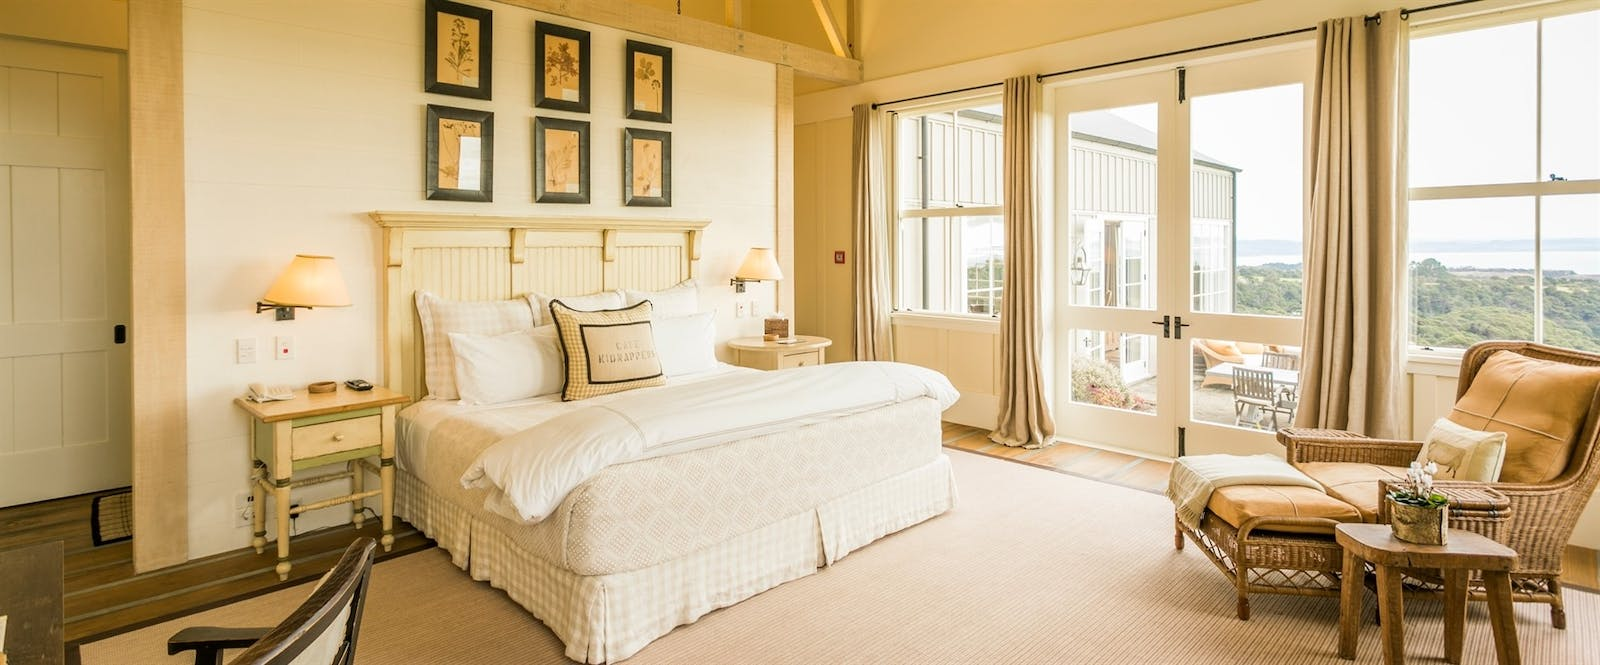 Owner's Cottage Master Bedroom at The Farm at Cape Kidnappers, Hawke's Bay